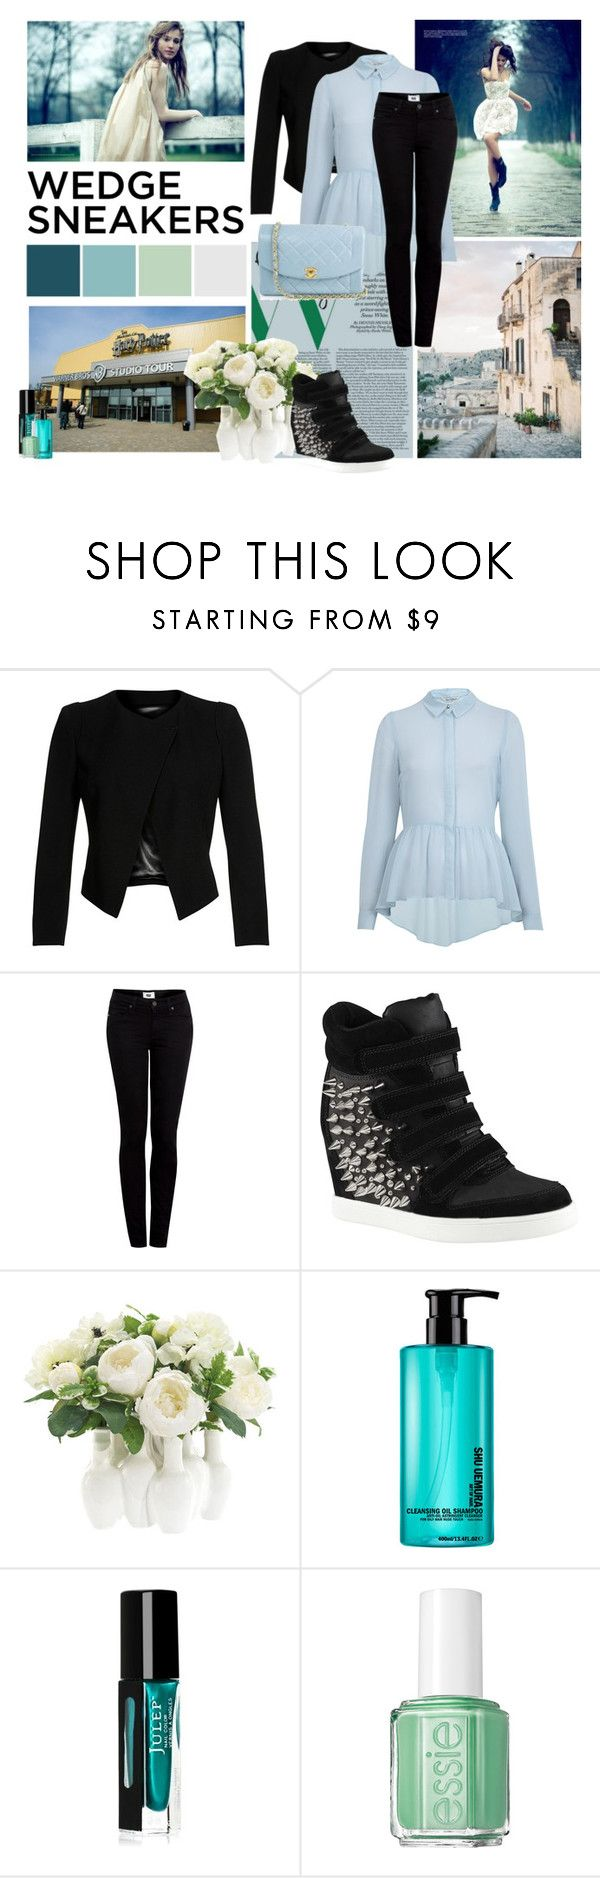 """""""What Do You Wear With Wedge Sneakers?"""" by harry-potter-girl ❤ liked on Polyvore featuring Plein Sud, Miss Selfridge, Paige Denim, ALDO, Chanel, NDI, shu uemura and Essie"""